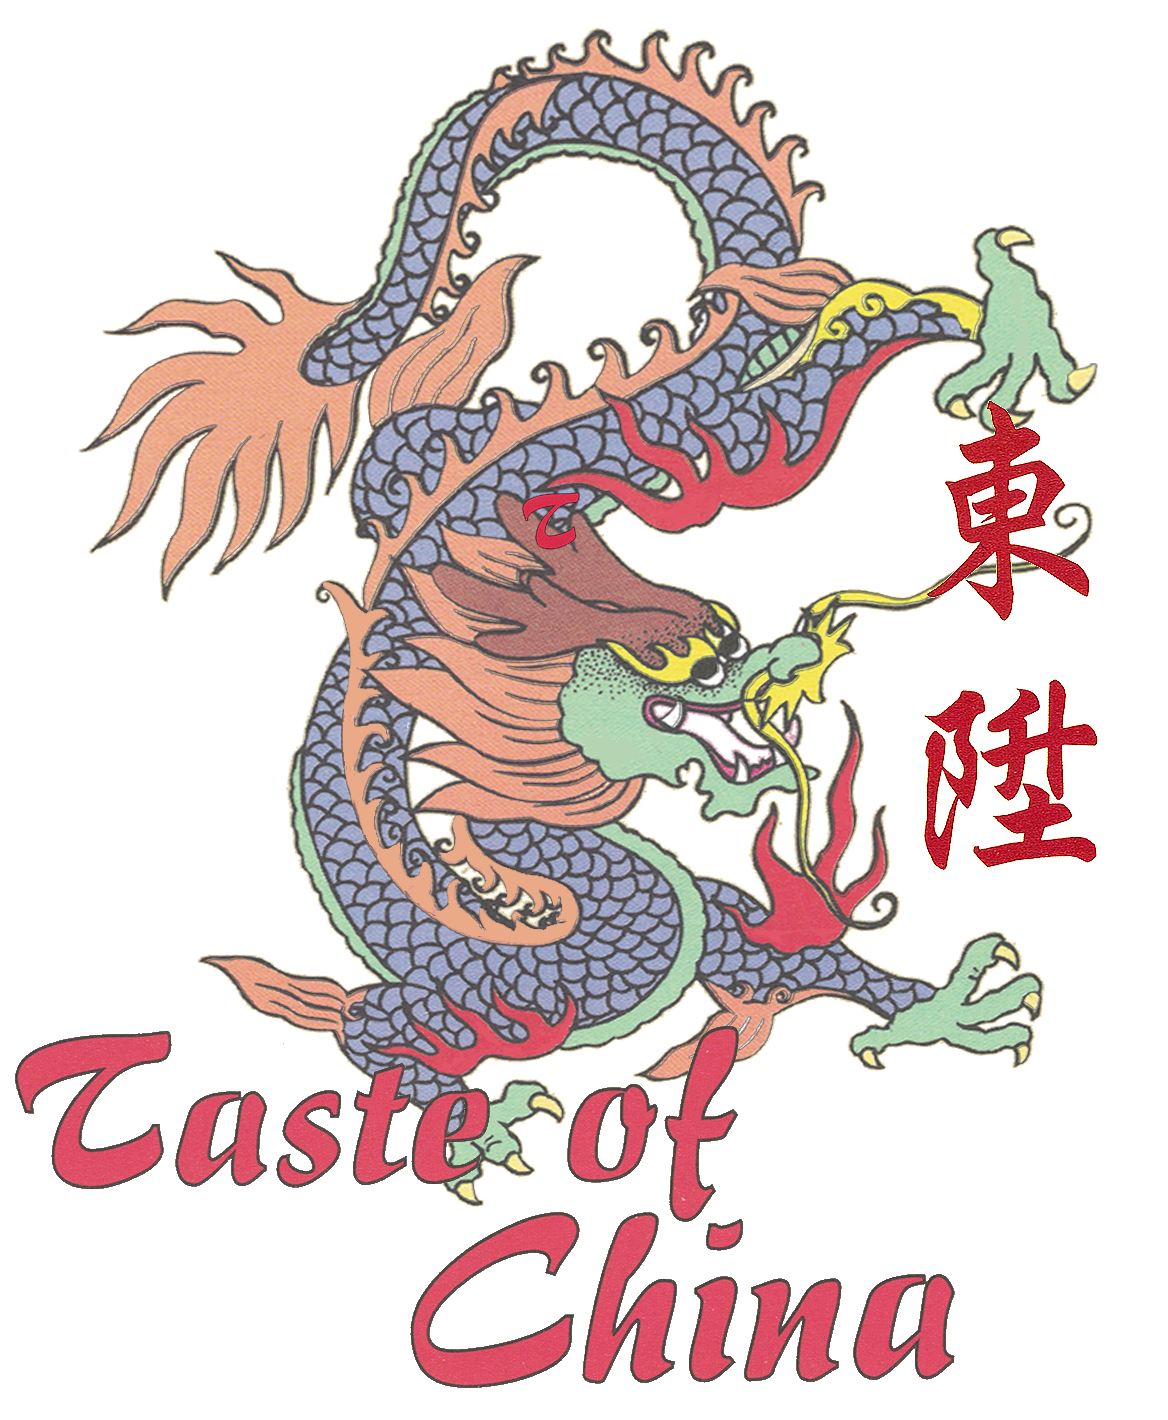 Taste of China - Chinese Restaurant 7801 13th Ave, Brooklyn NY 11228